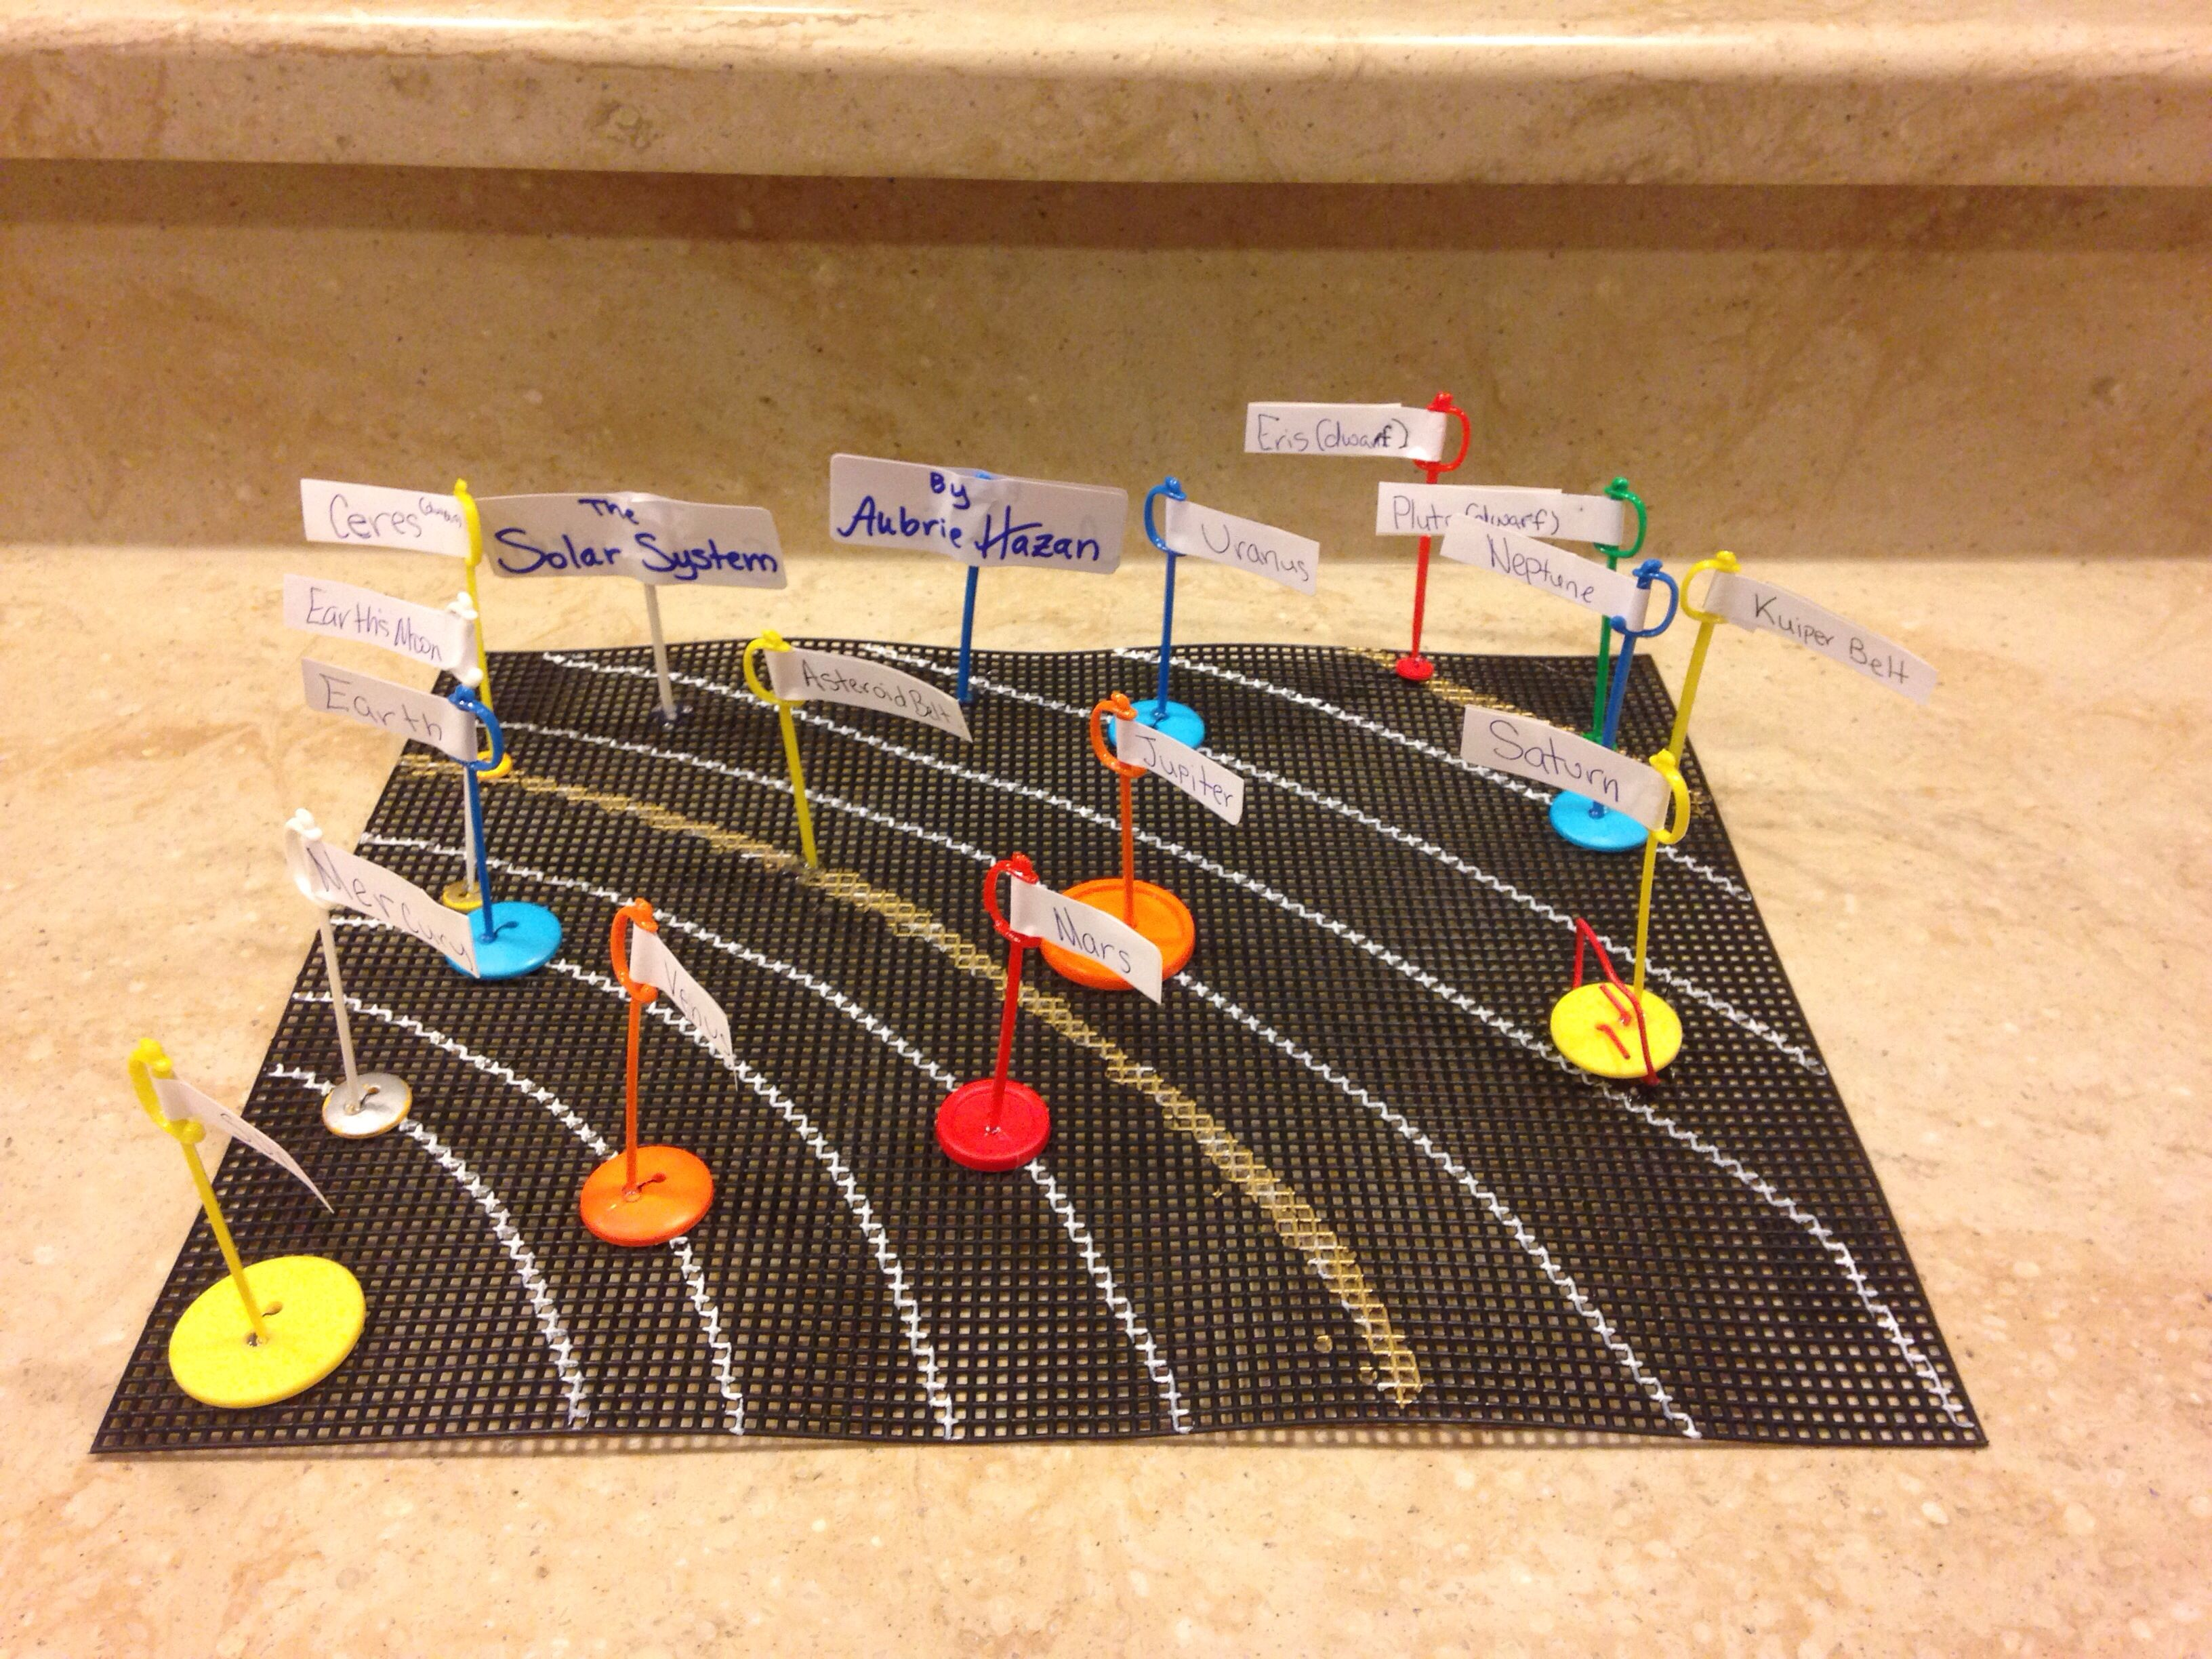 Solar System Diagram For School Project Made Our Of A Plastic The Label Pics About Space Canvas Buttons